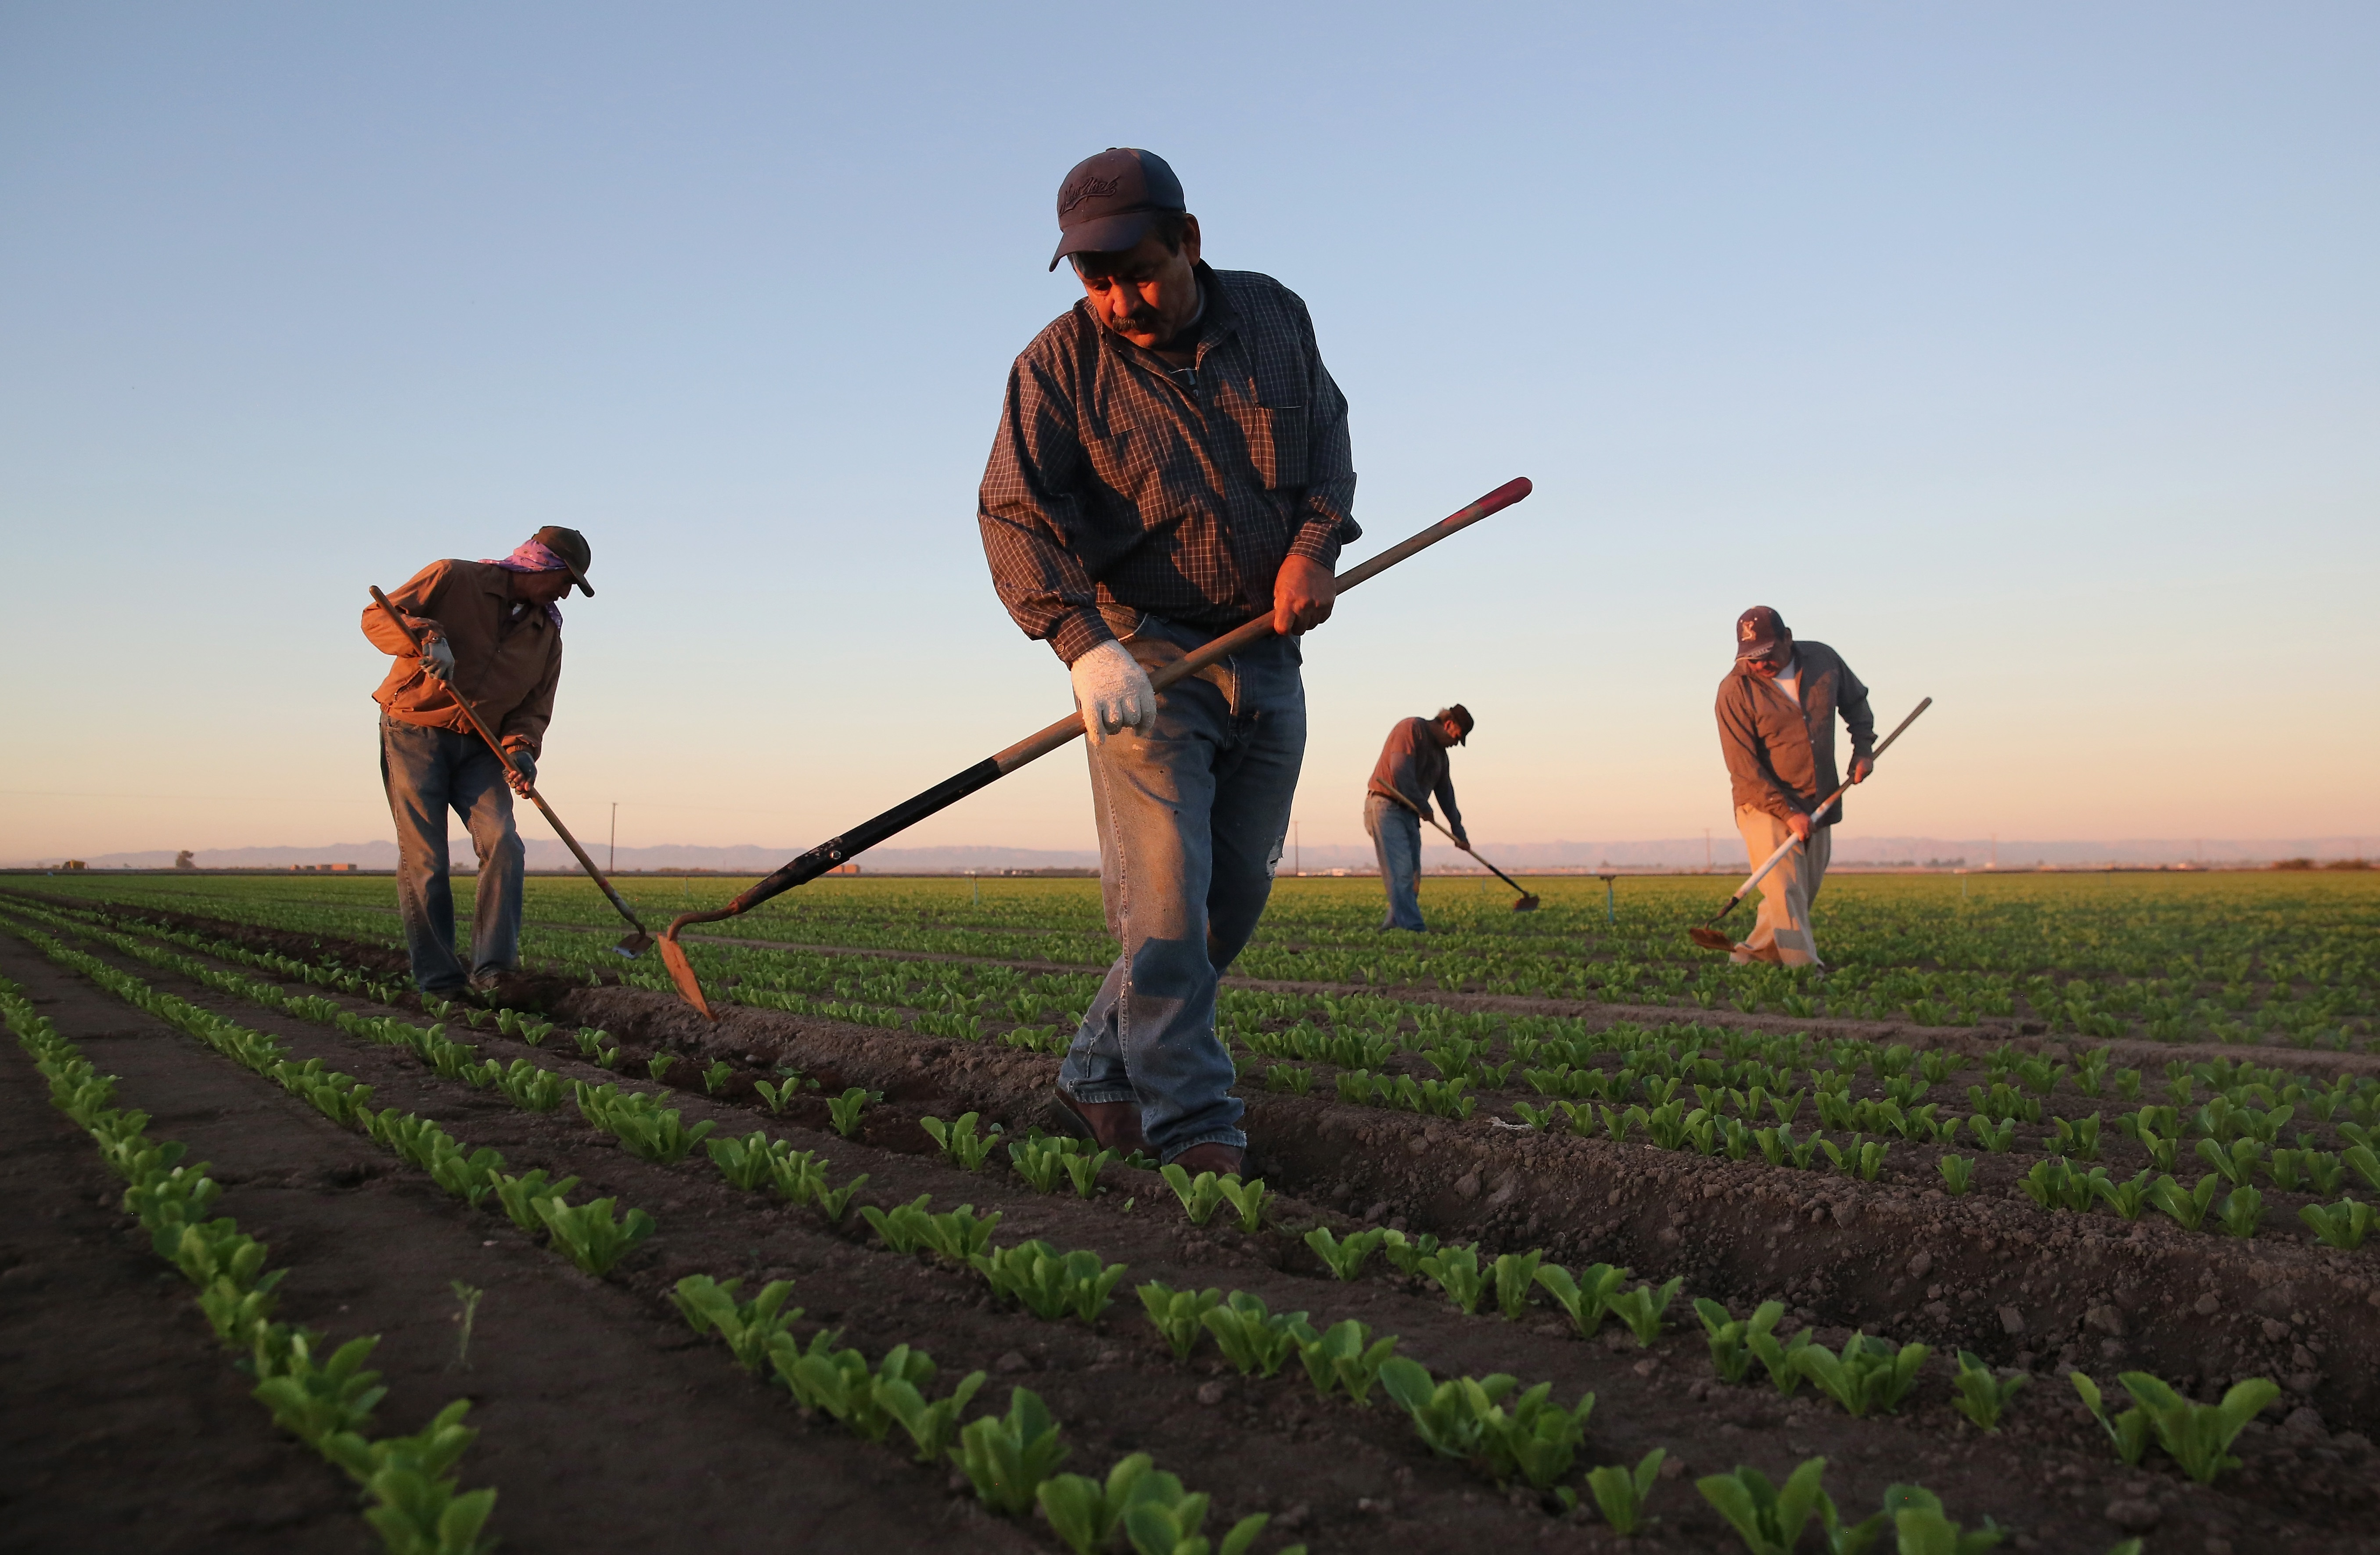 the changes in the complexion of farming over times Yet even modest changes in fertility over the coming decades could see  relative to intensive farming  take on a different complexion,.